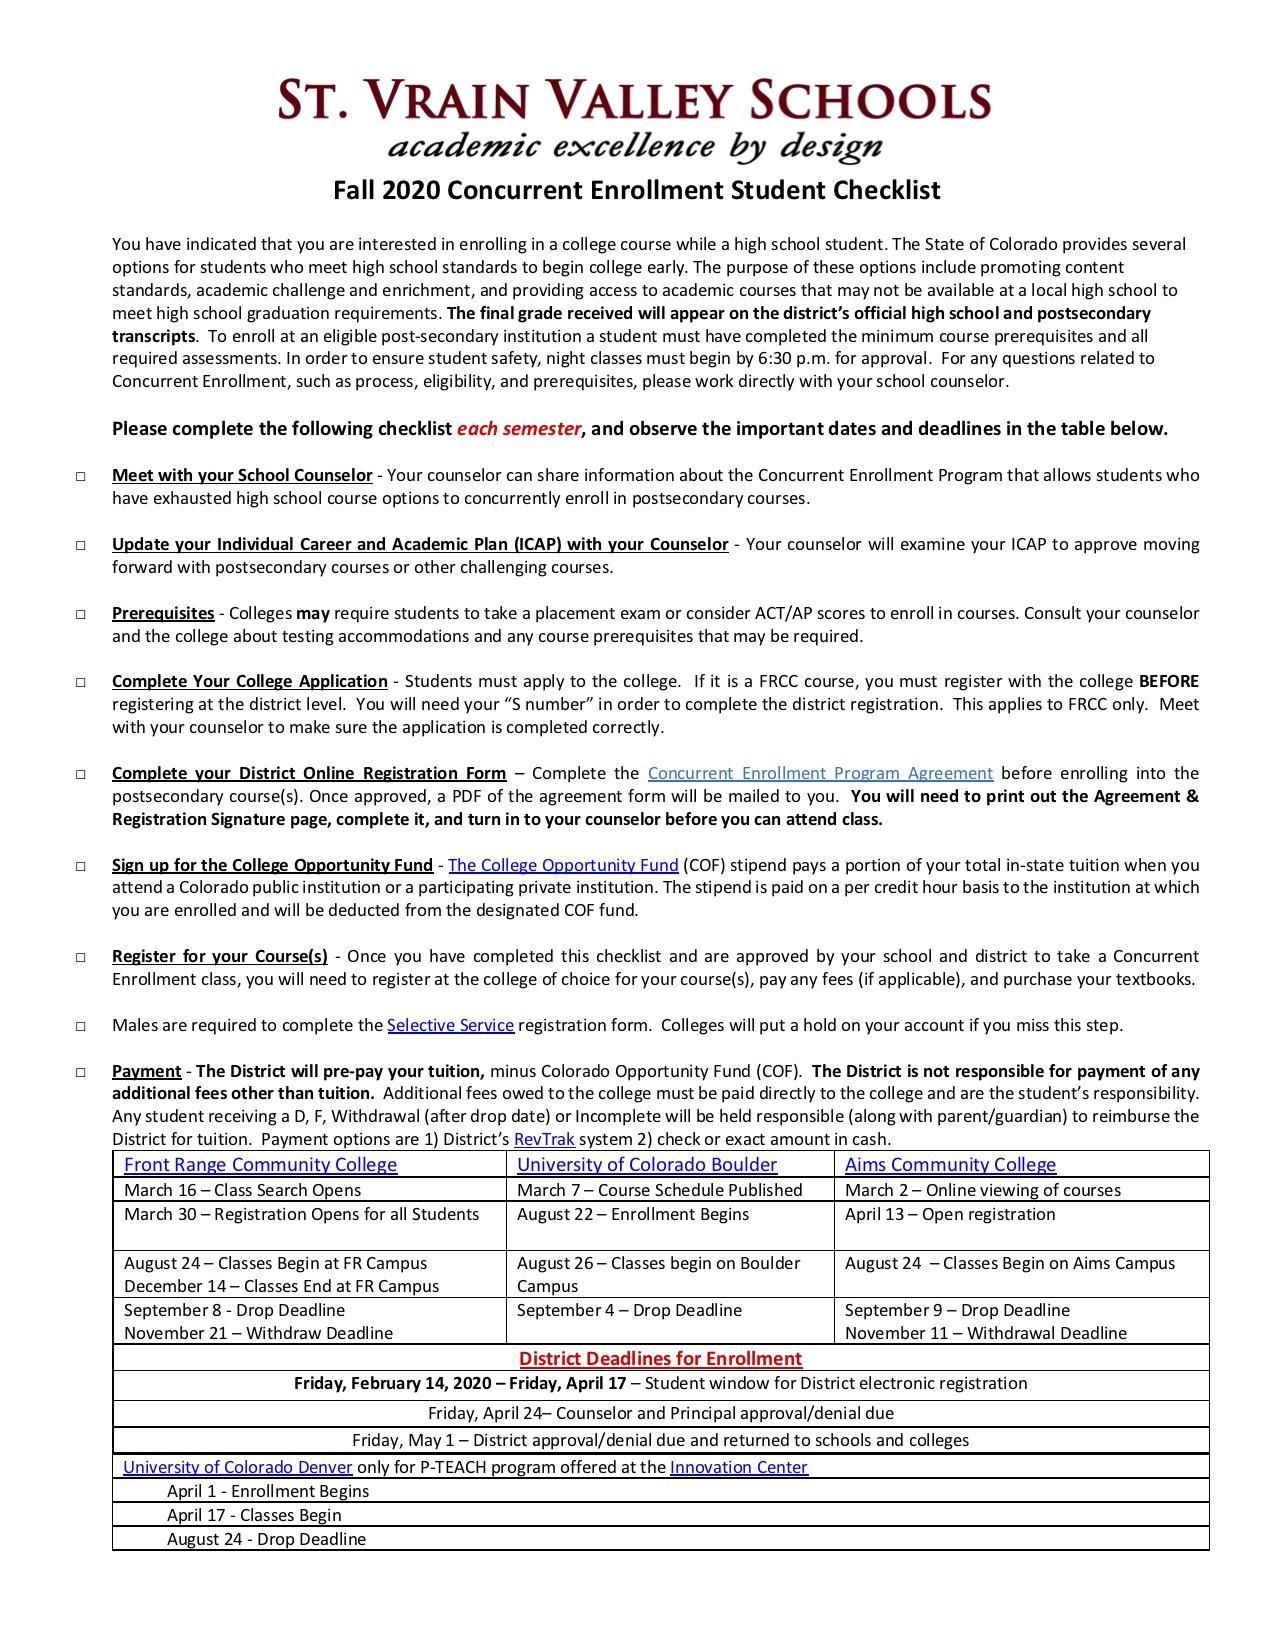 checklist for registering for college classes